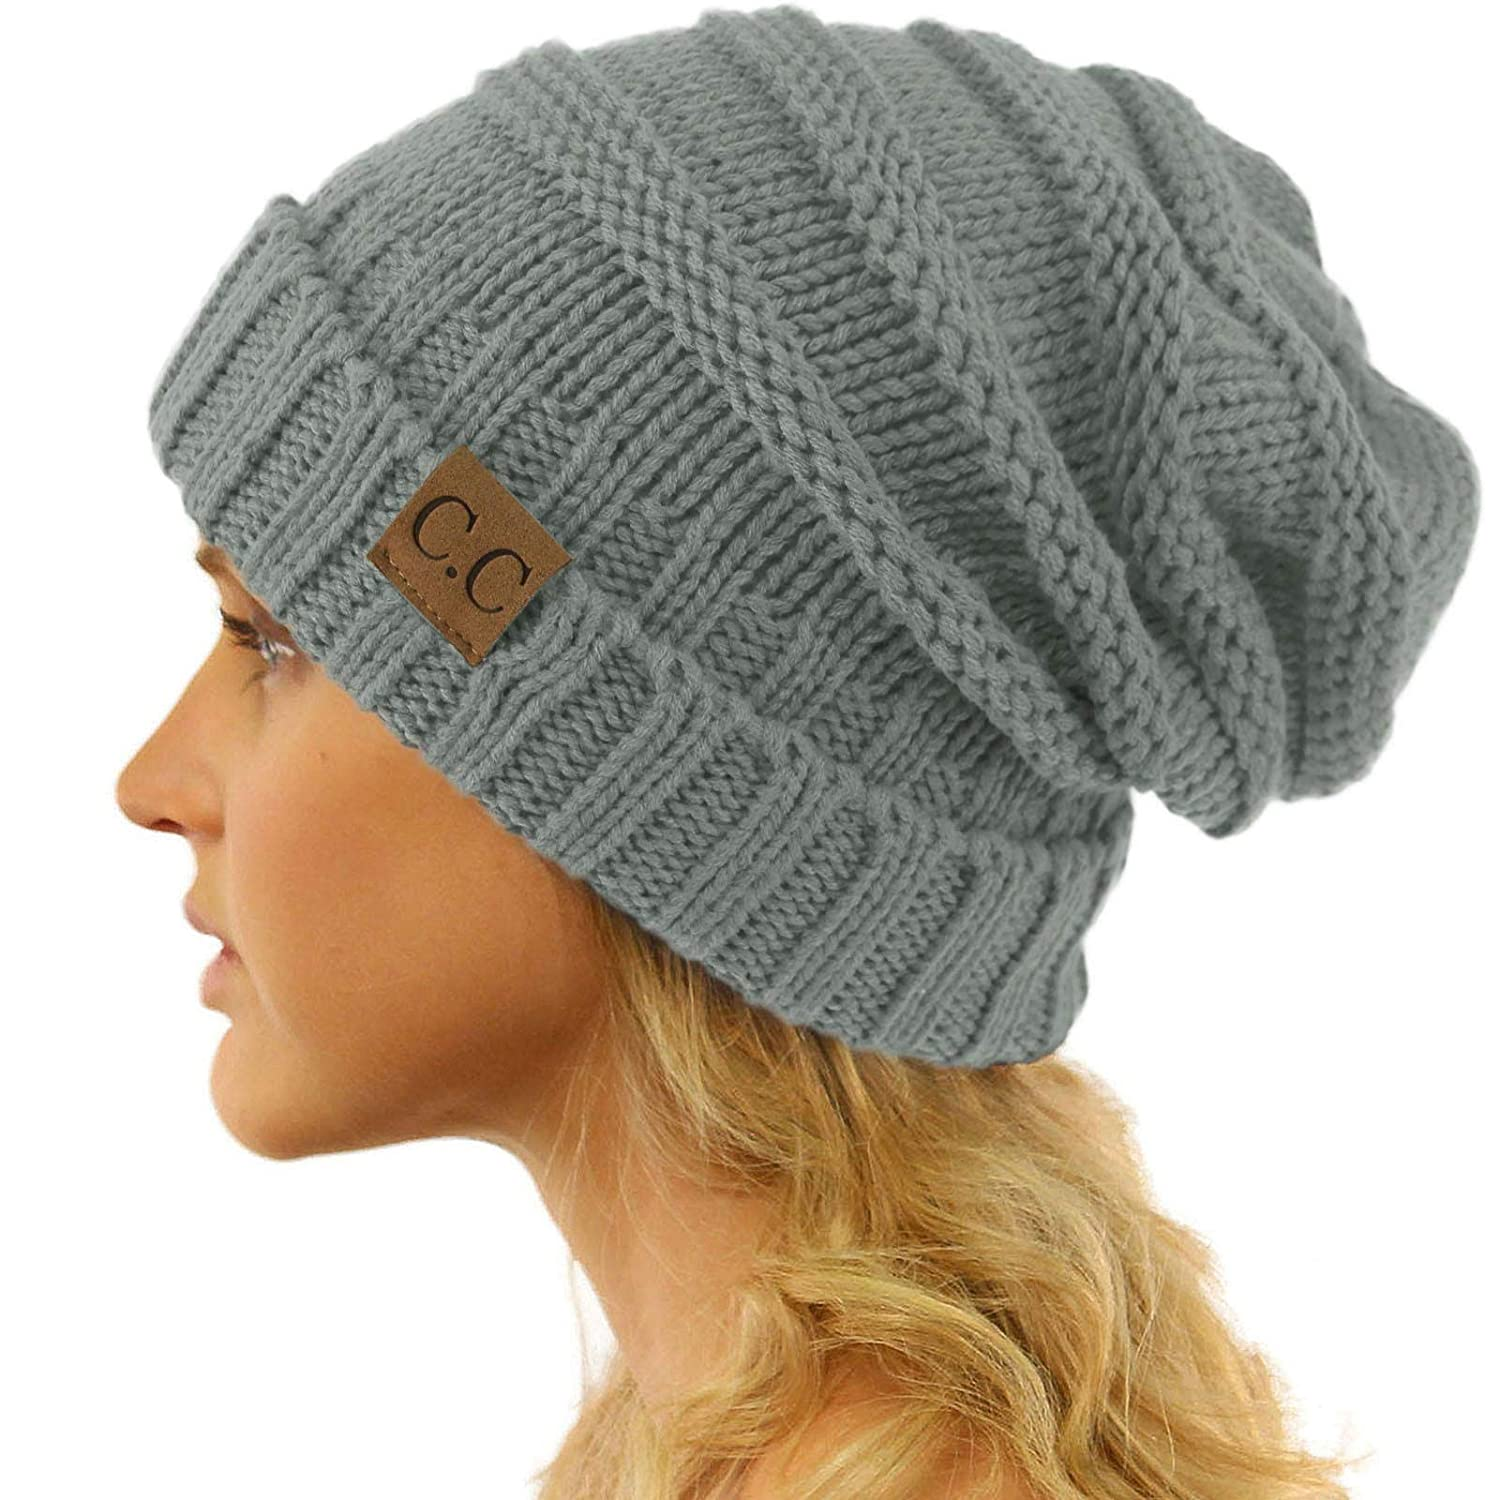 Winter Trendy Warm Oversized Chunky Baggy Stretchy Slouchy Skully Beanie Hat